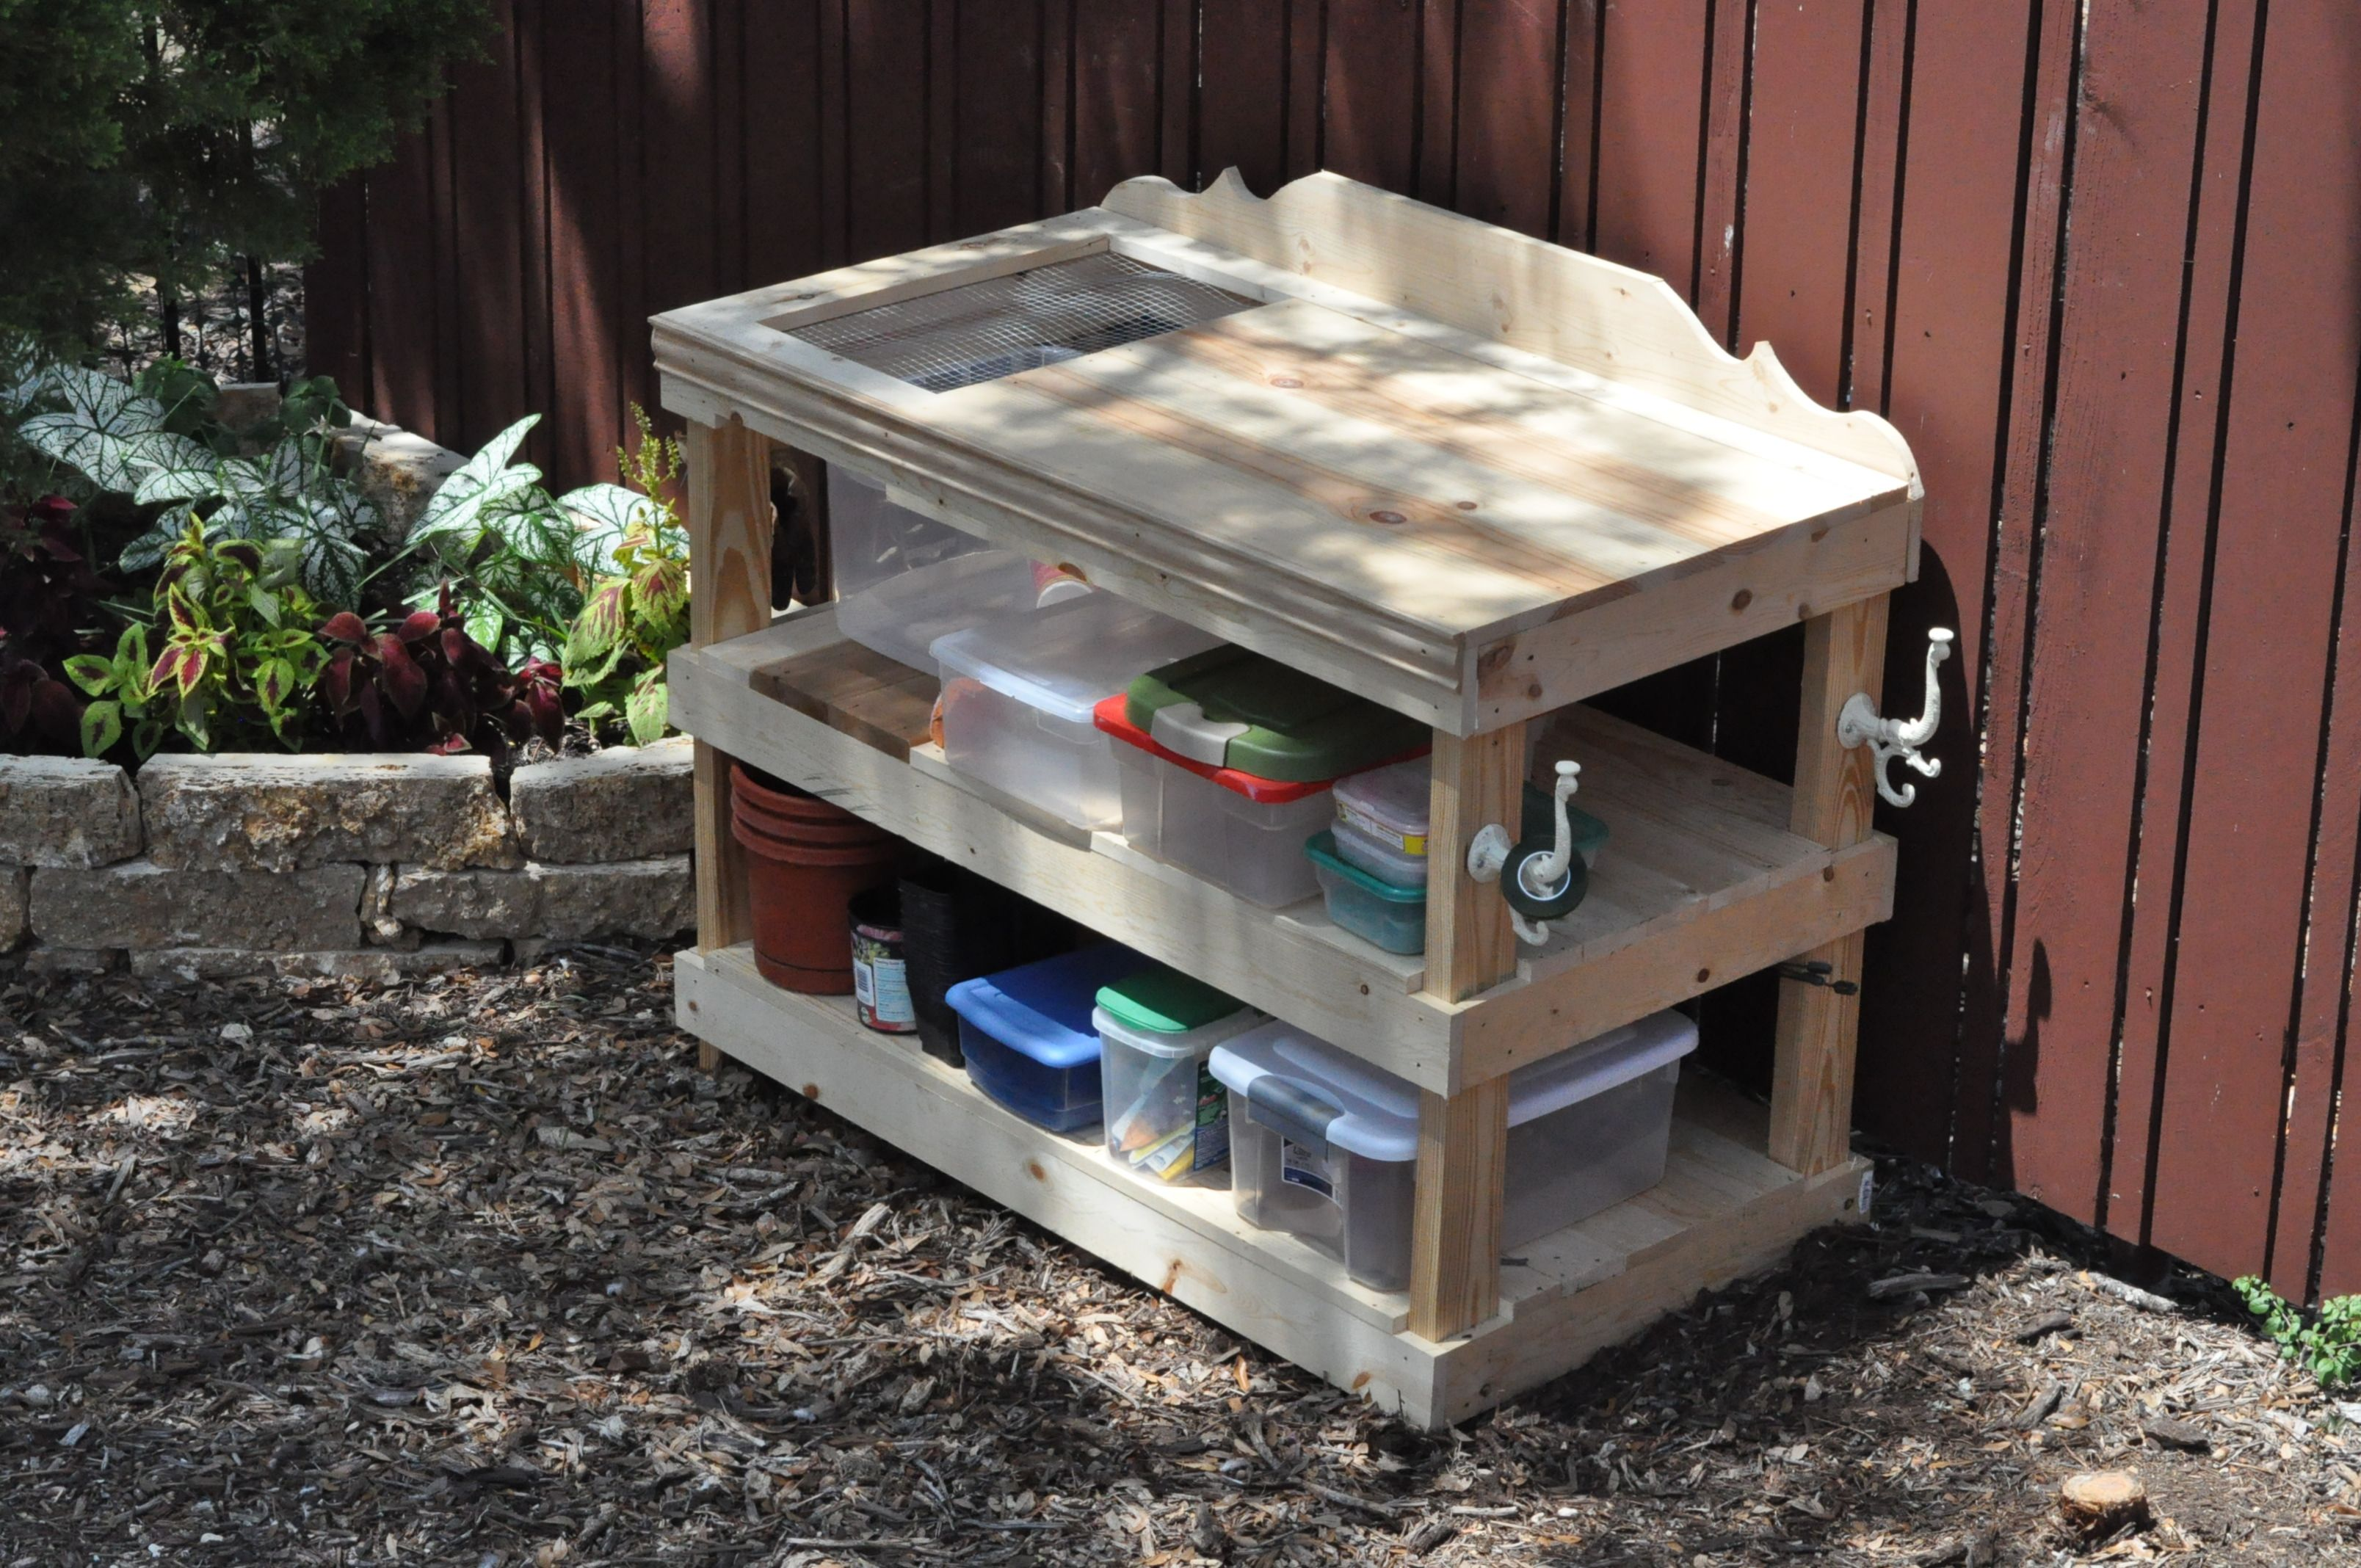 My planting Table that the soon to be hubby made for me!  After a walk through a bib box store....I was admiring a garden table and when I got home the next evening. Wha Laa.  Love it!